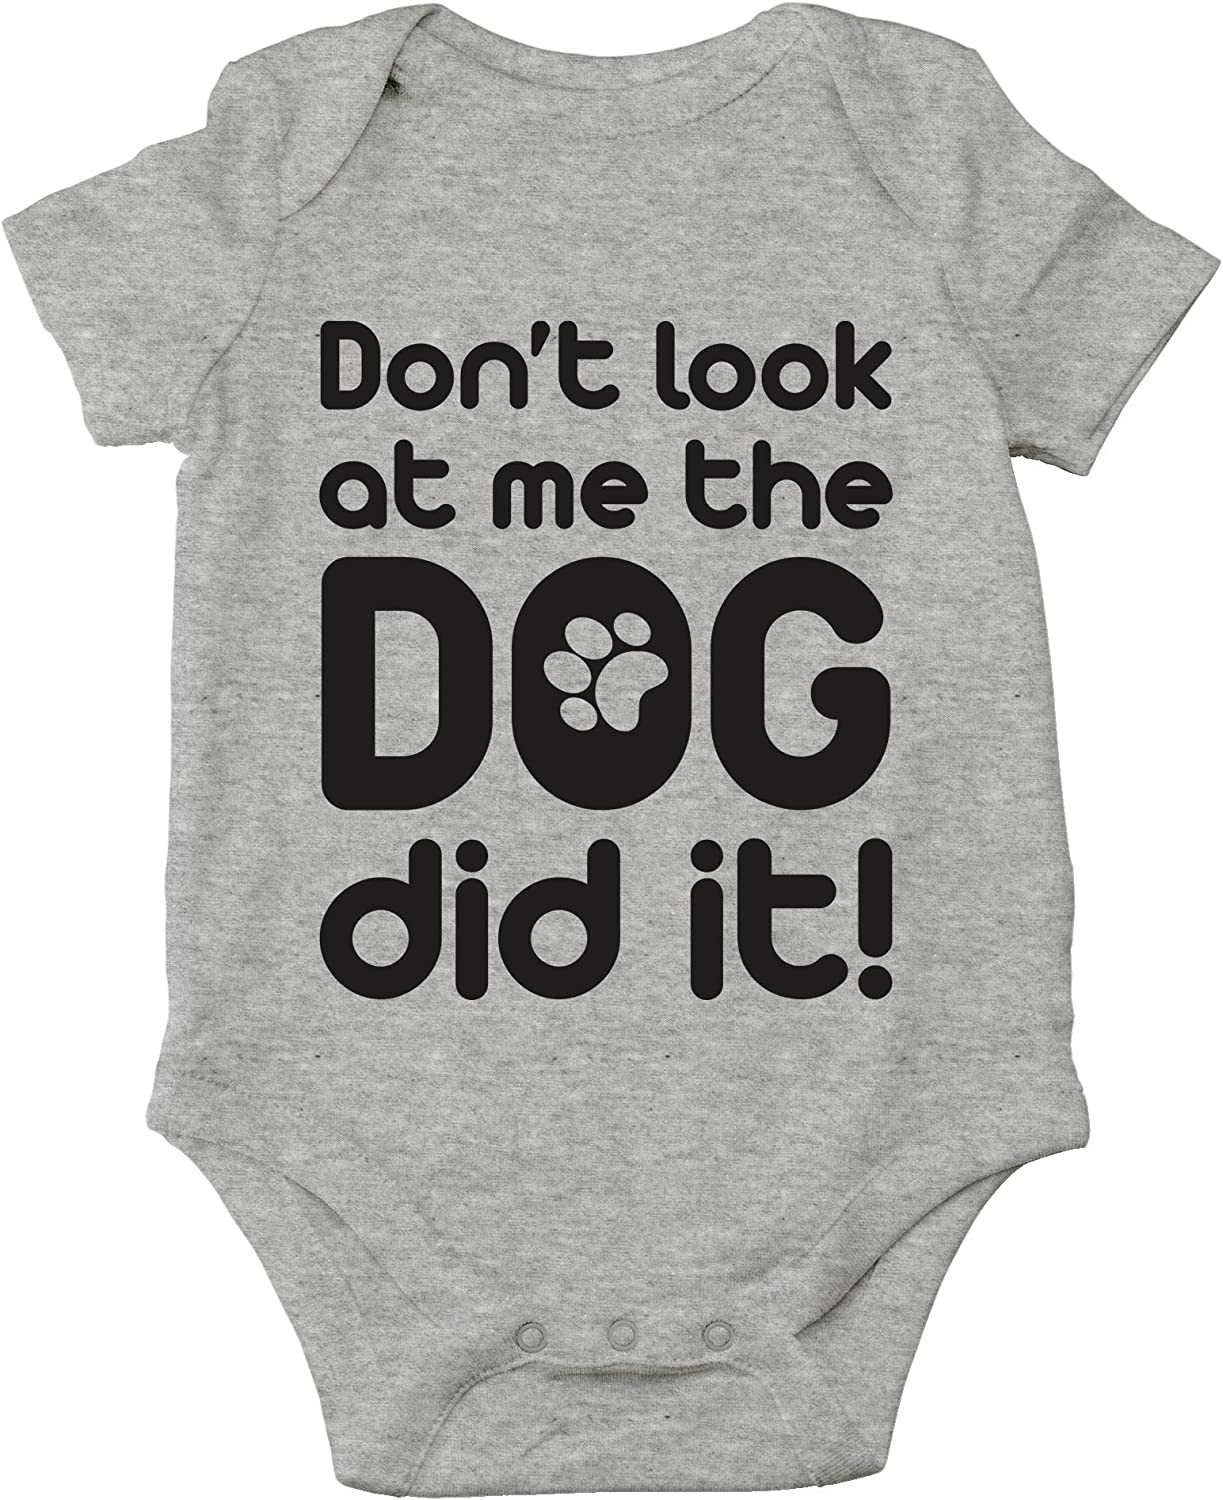 The Dog Did It! Dont Look at Me Blame The Pet Animal Lover Cute One-Piece Infant Baby Bodysuit